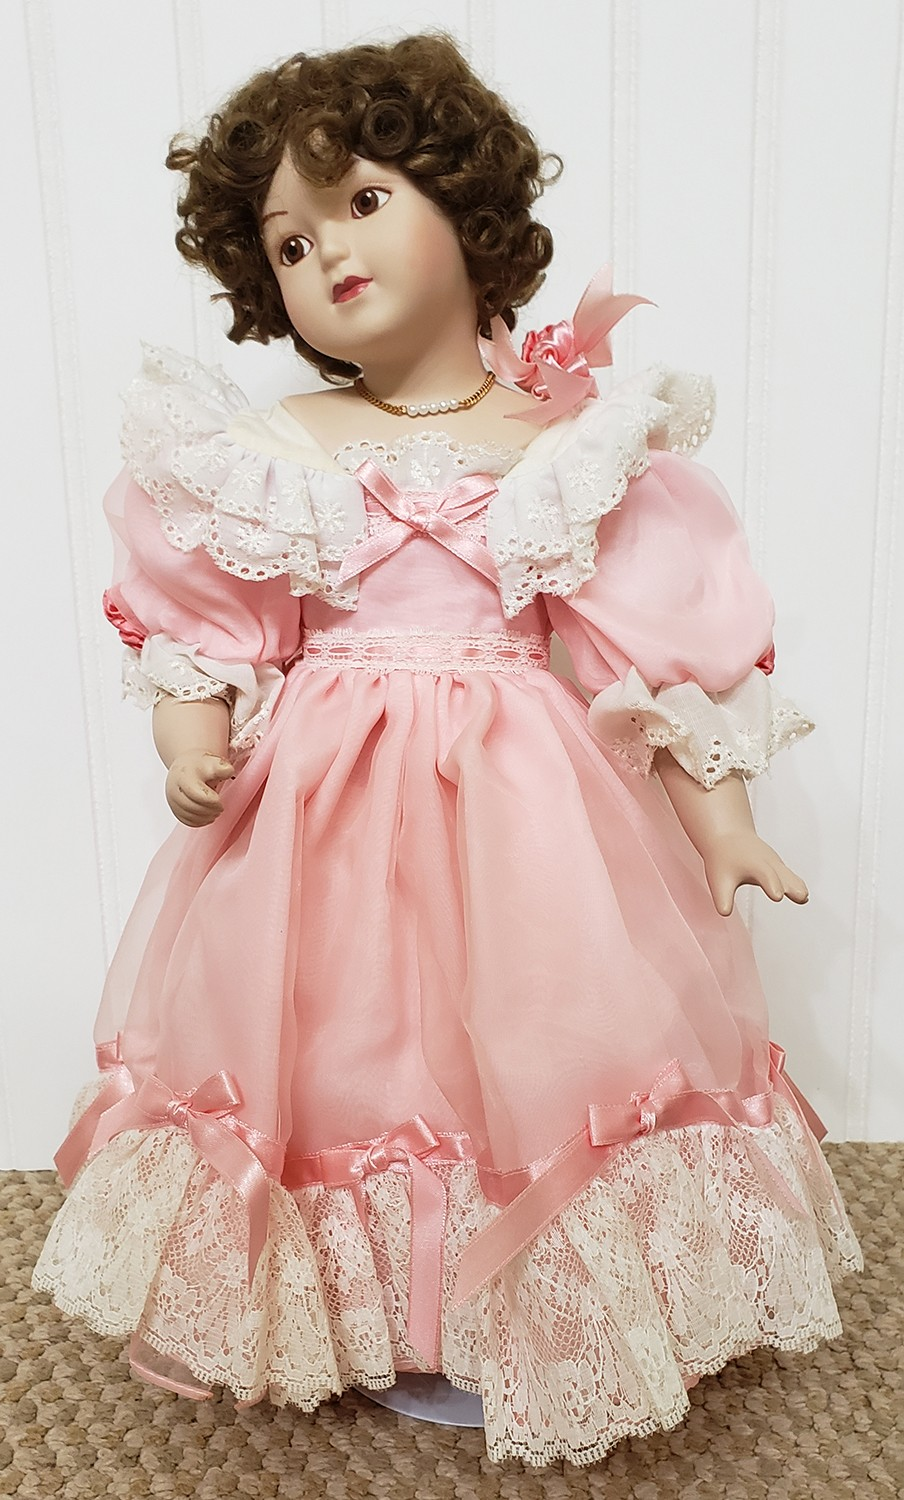 Haunted Doll Ceina from Polly Cedar Estate